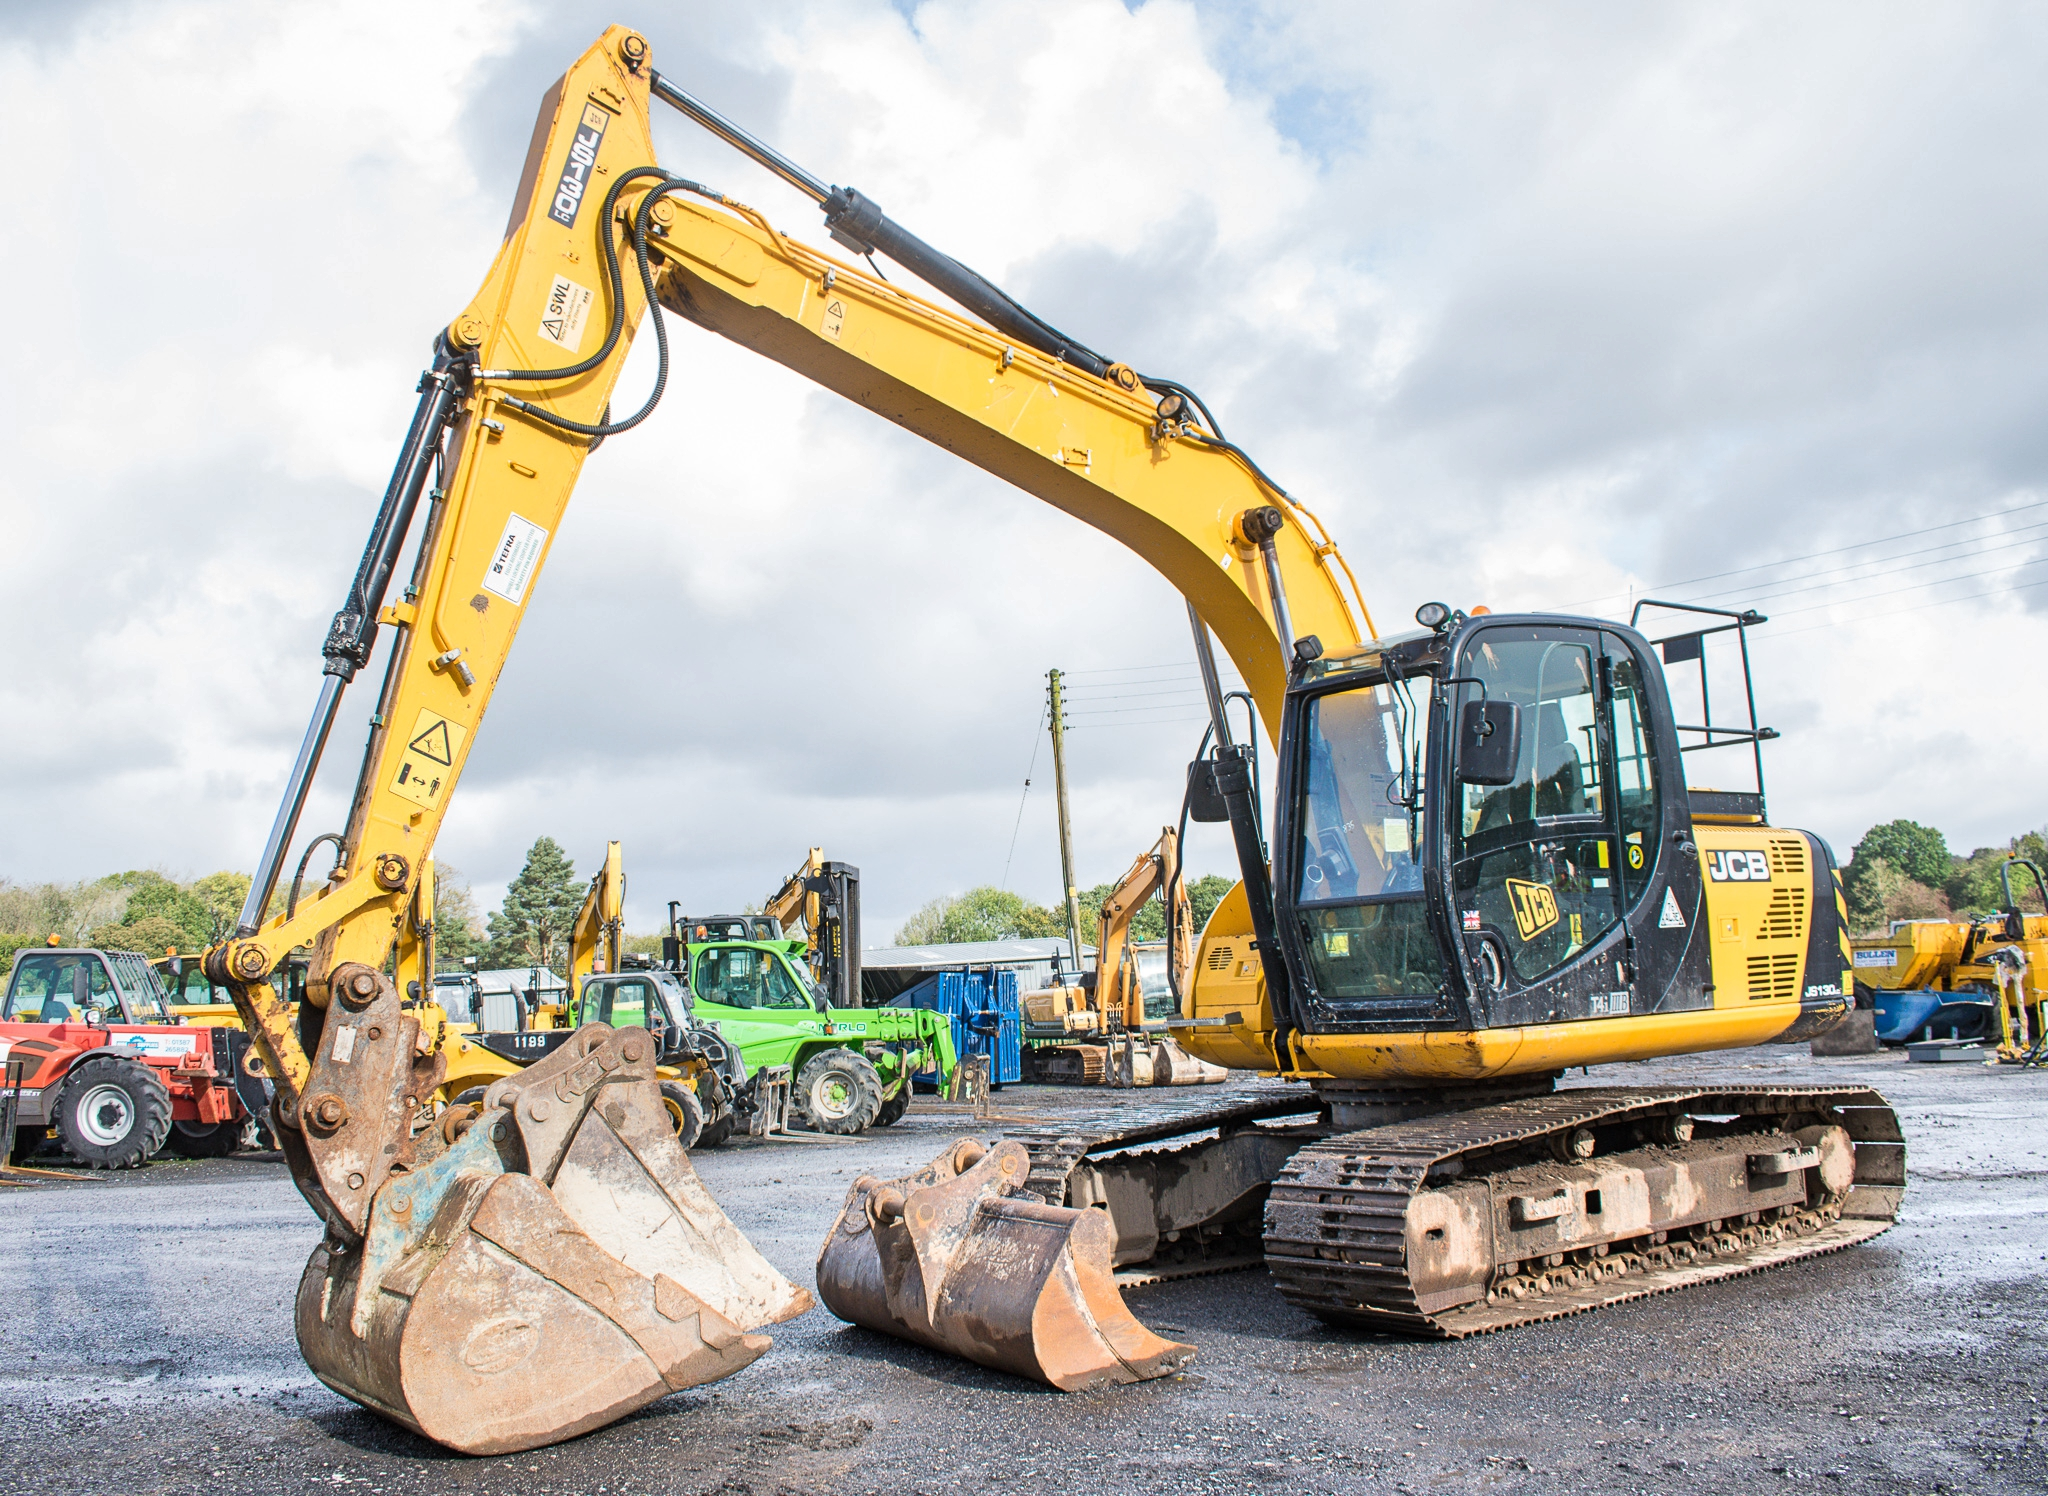 Lot 3 - JCB JS130 LC 14 tonne steel tracked excavator Year: 2015 S/N: 2441322 Recorded Hours: 5921 auxillary